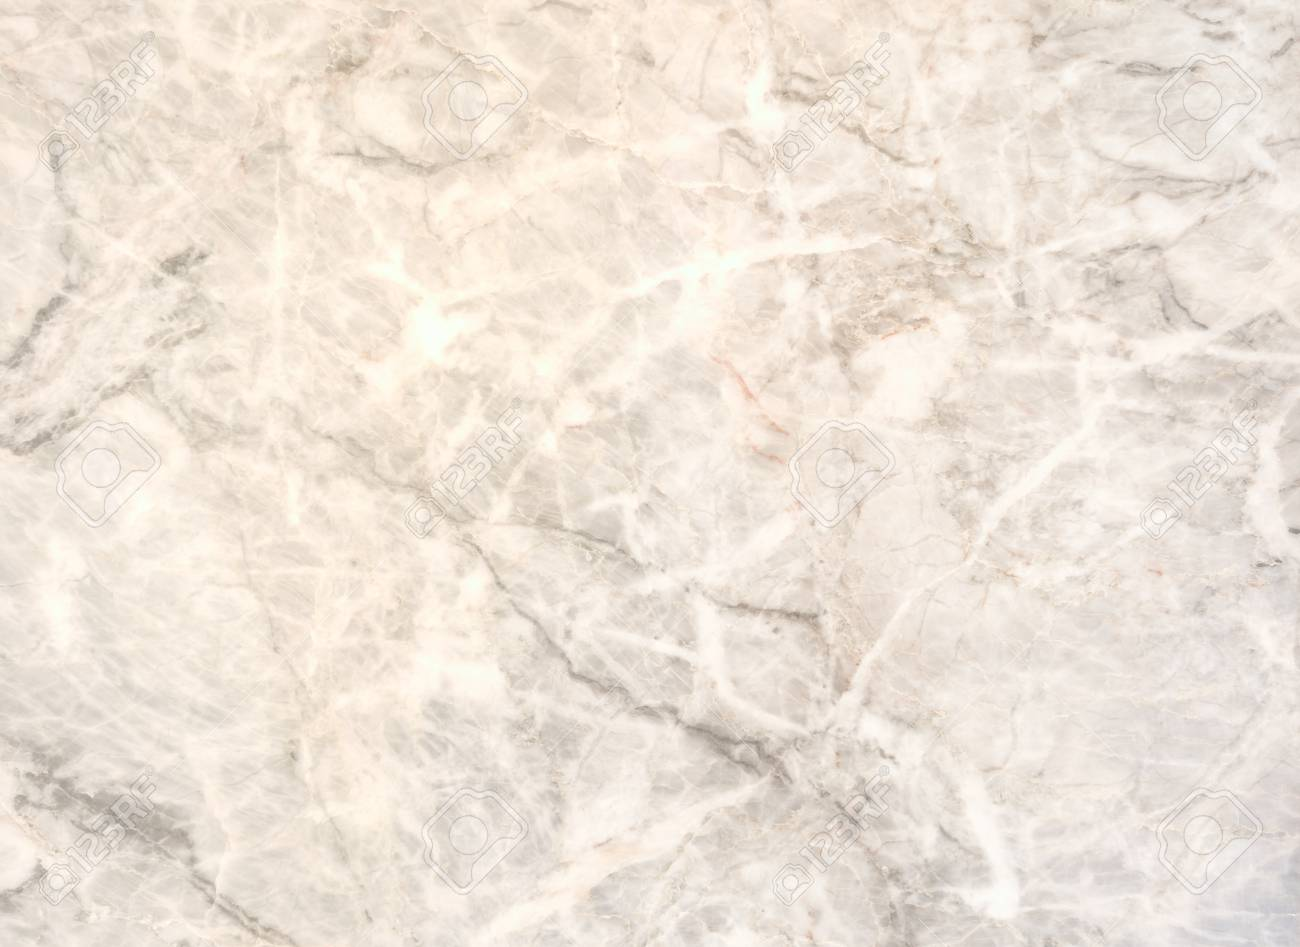 Beige Marble Stone Natural Light For Bathroom Or Kitchen White Stock Photo Picture And Royalty Free Image Image 94205690